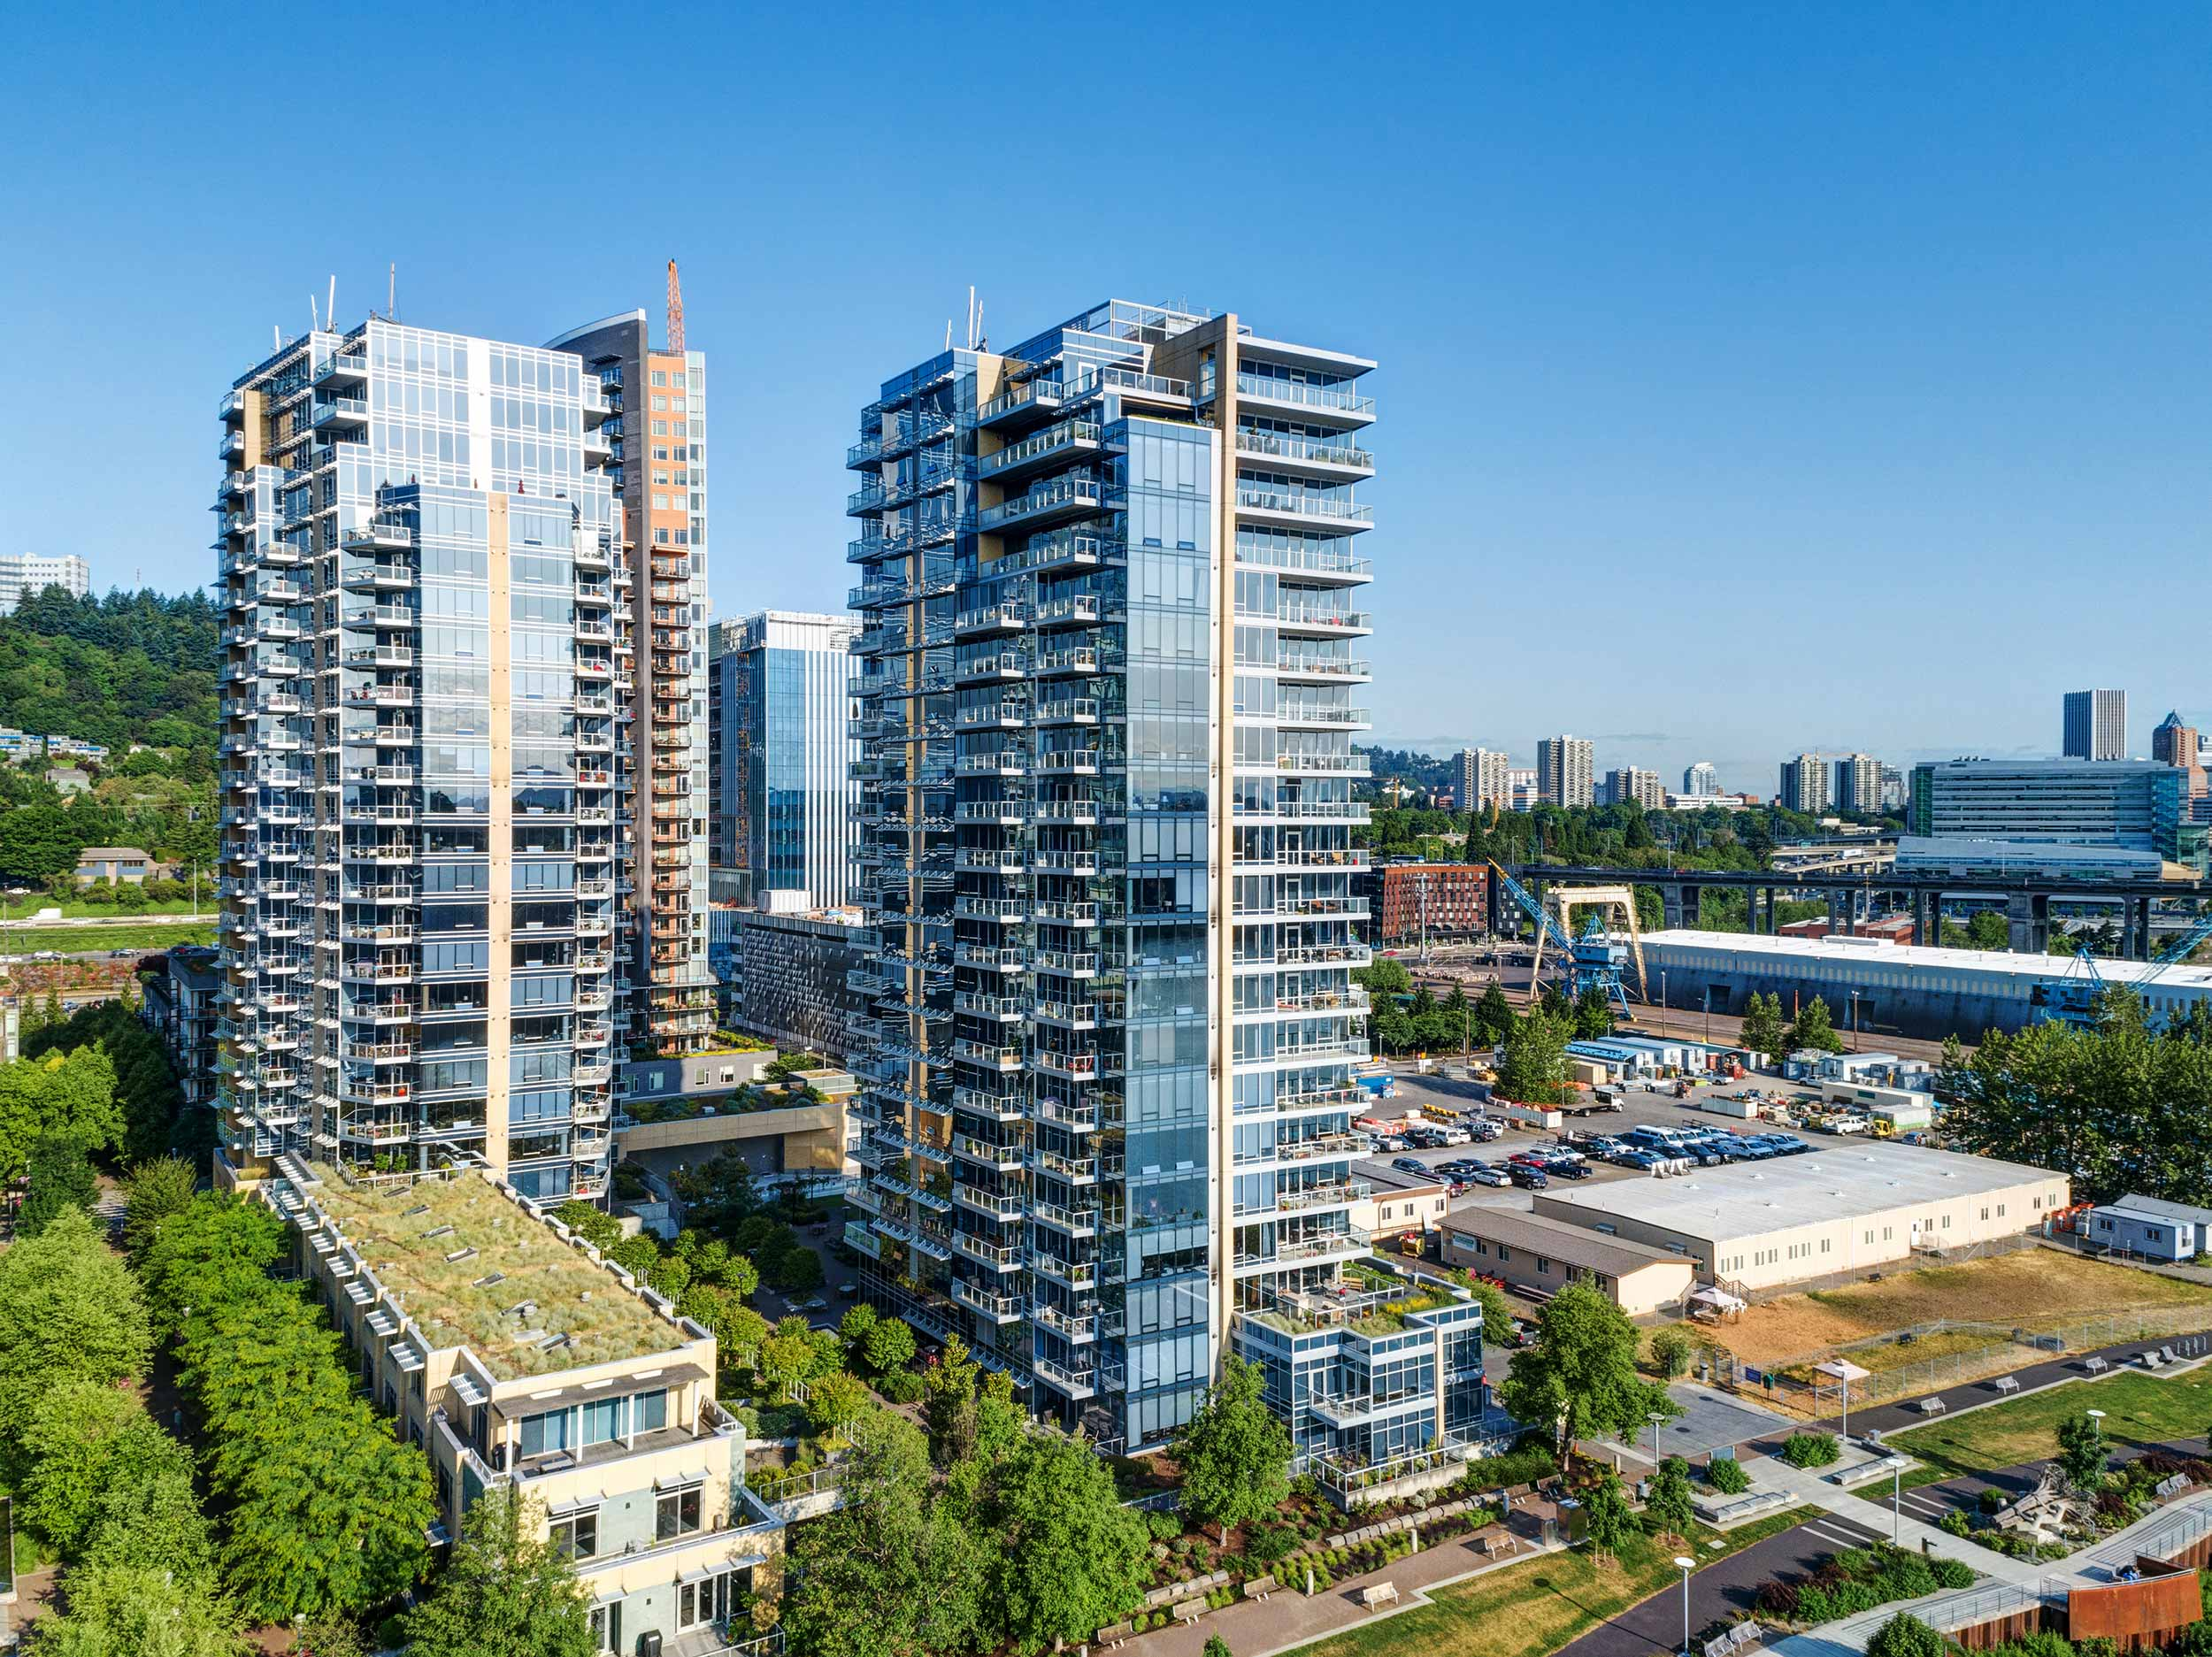 Meriwether Towers in the South Waterfront